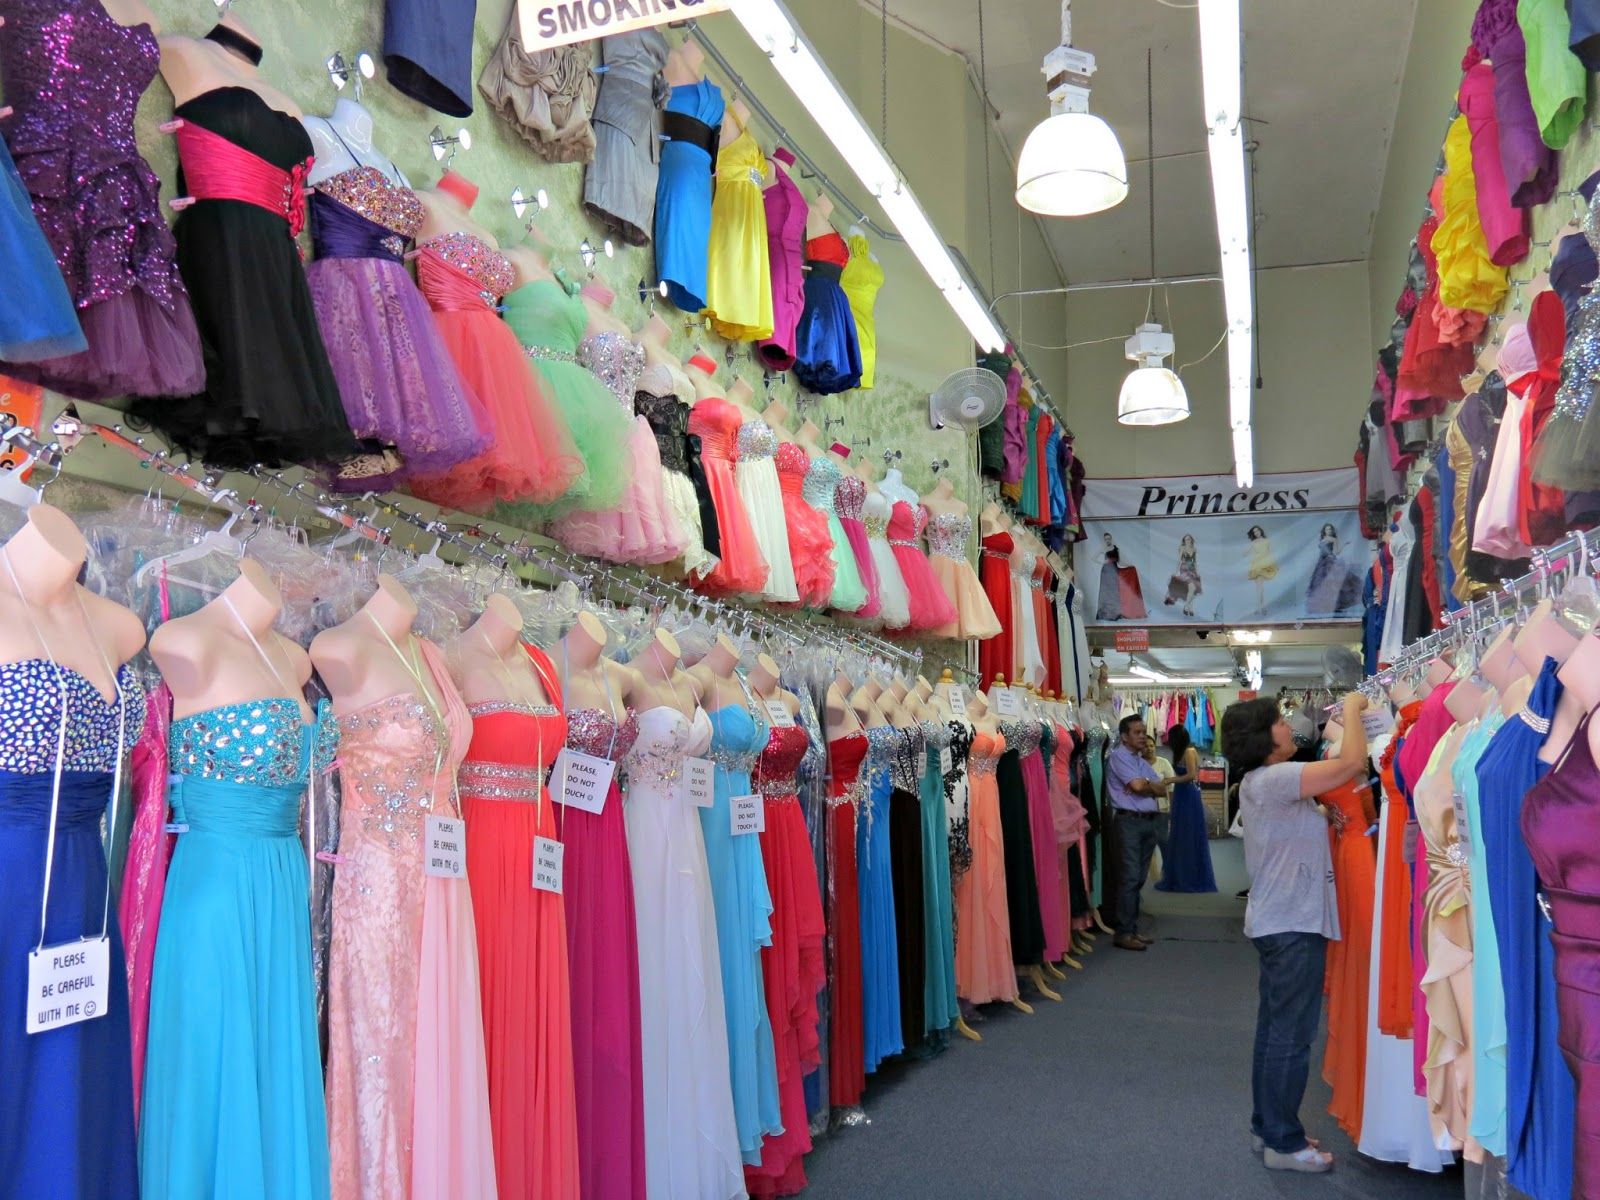 Princess Prom and Special Occasion Dress Store